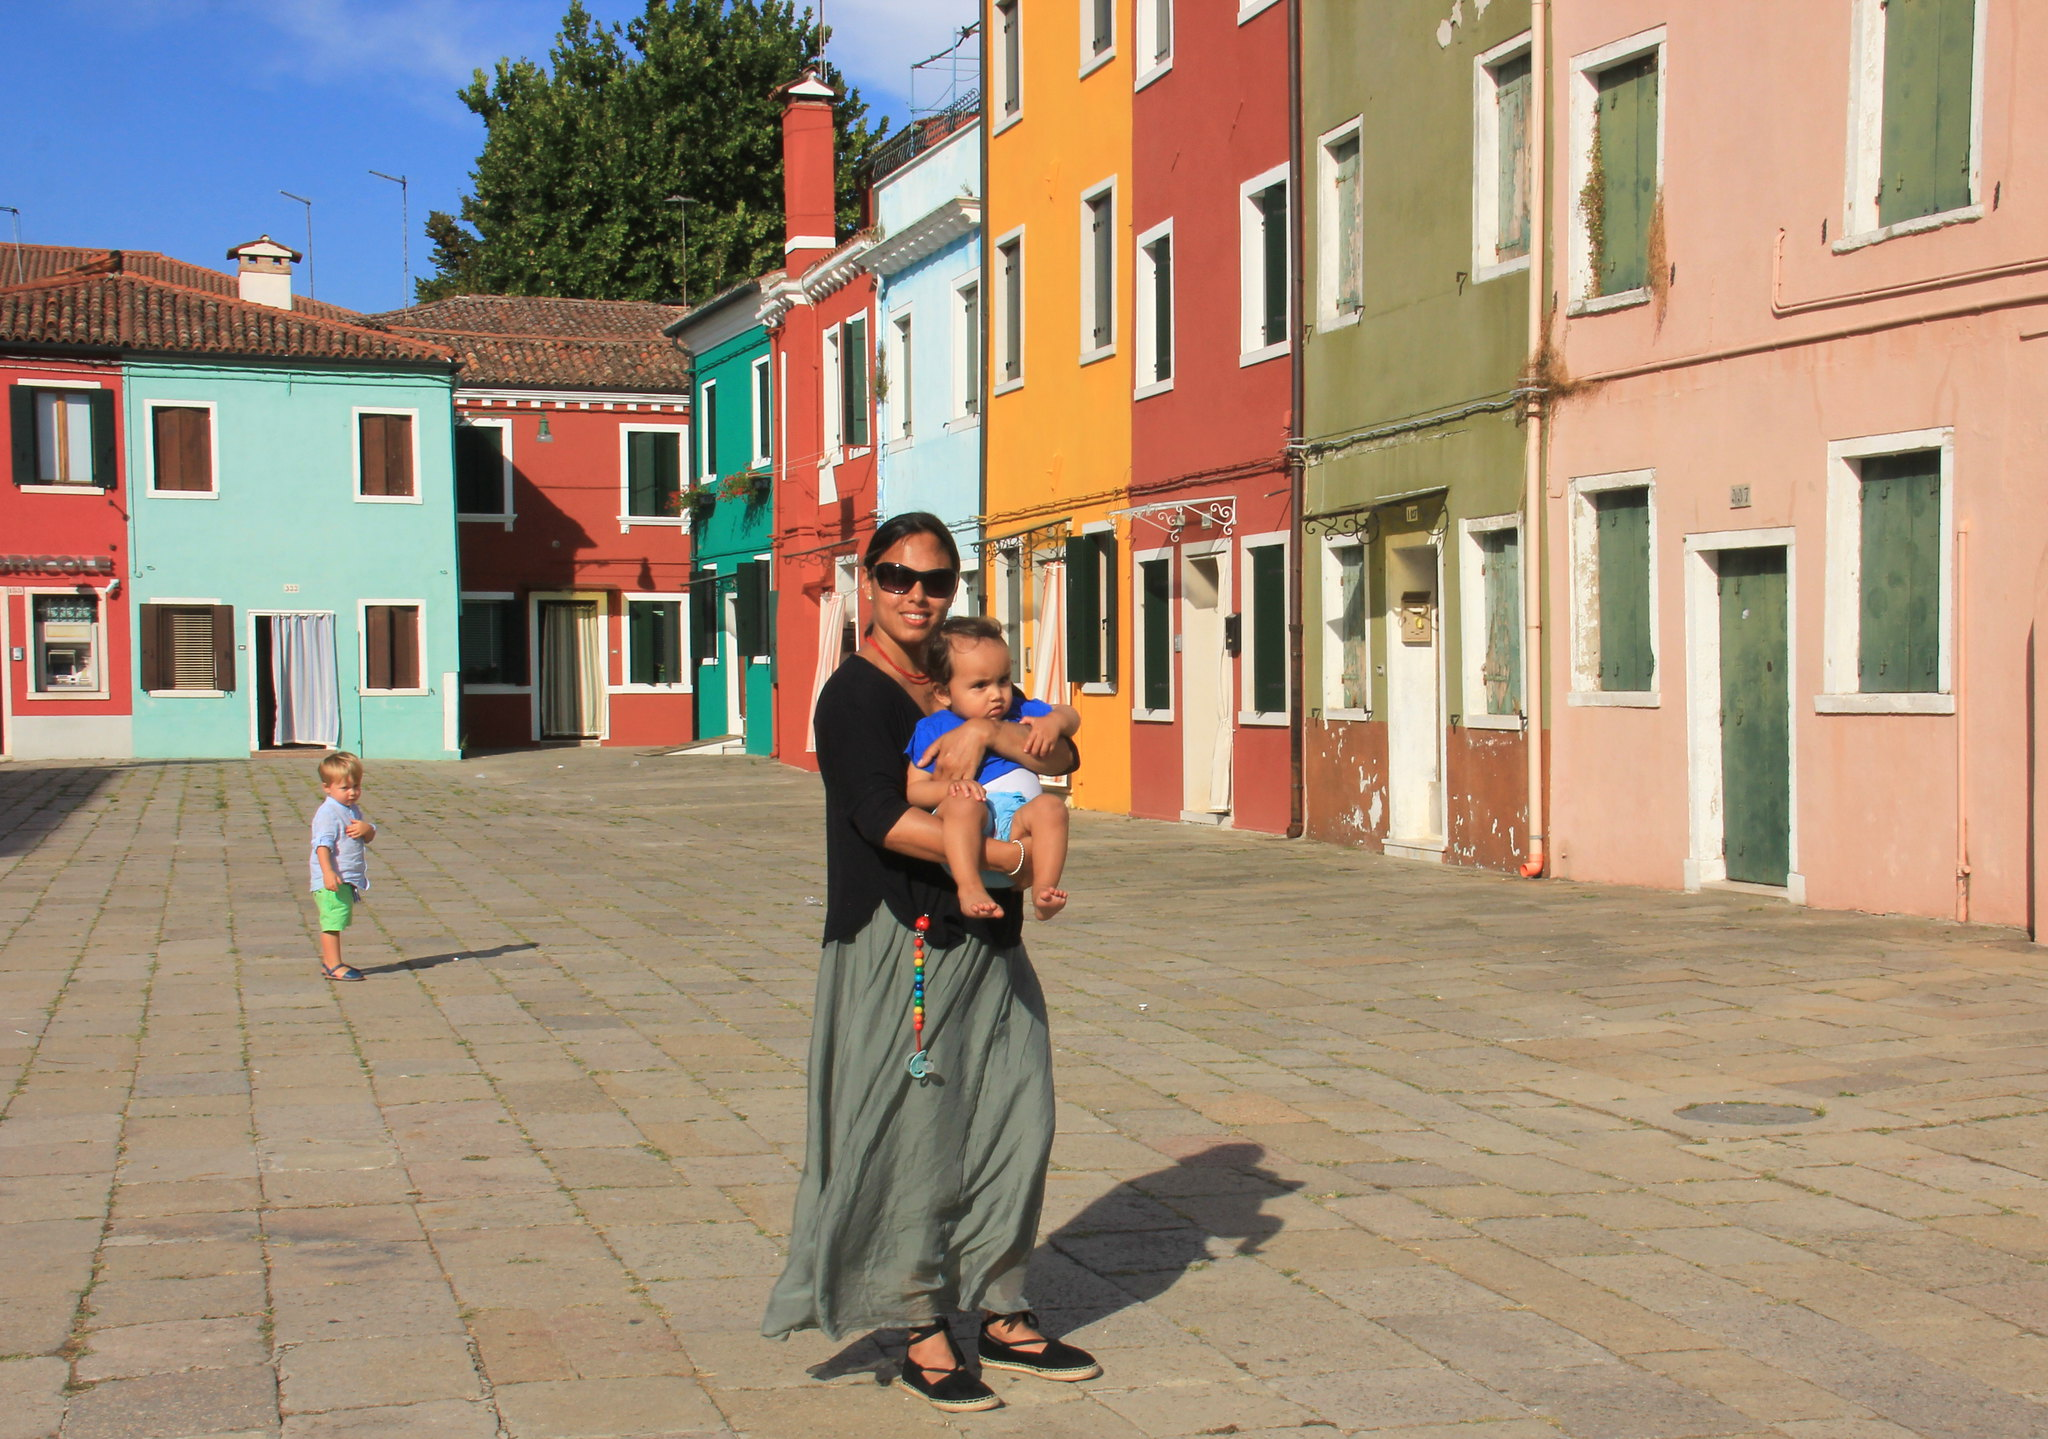 Burano village near Venice is known for colourful houses